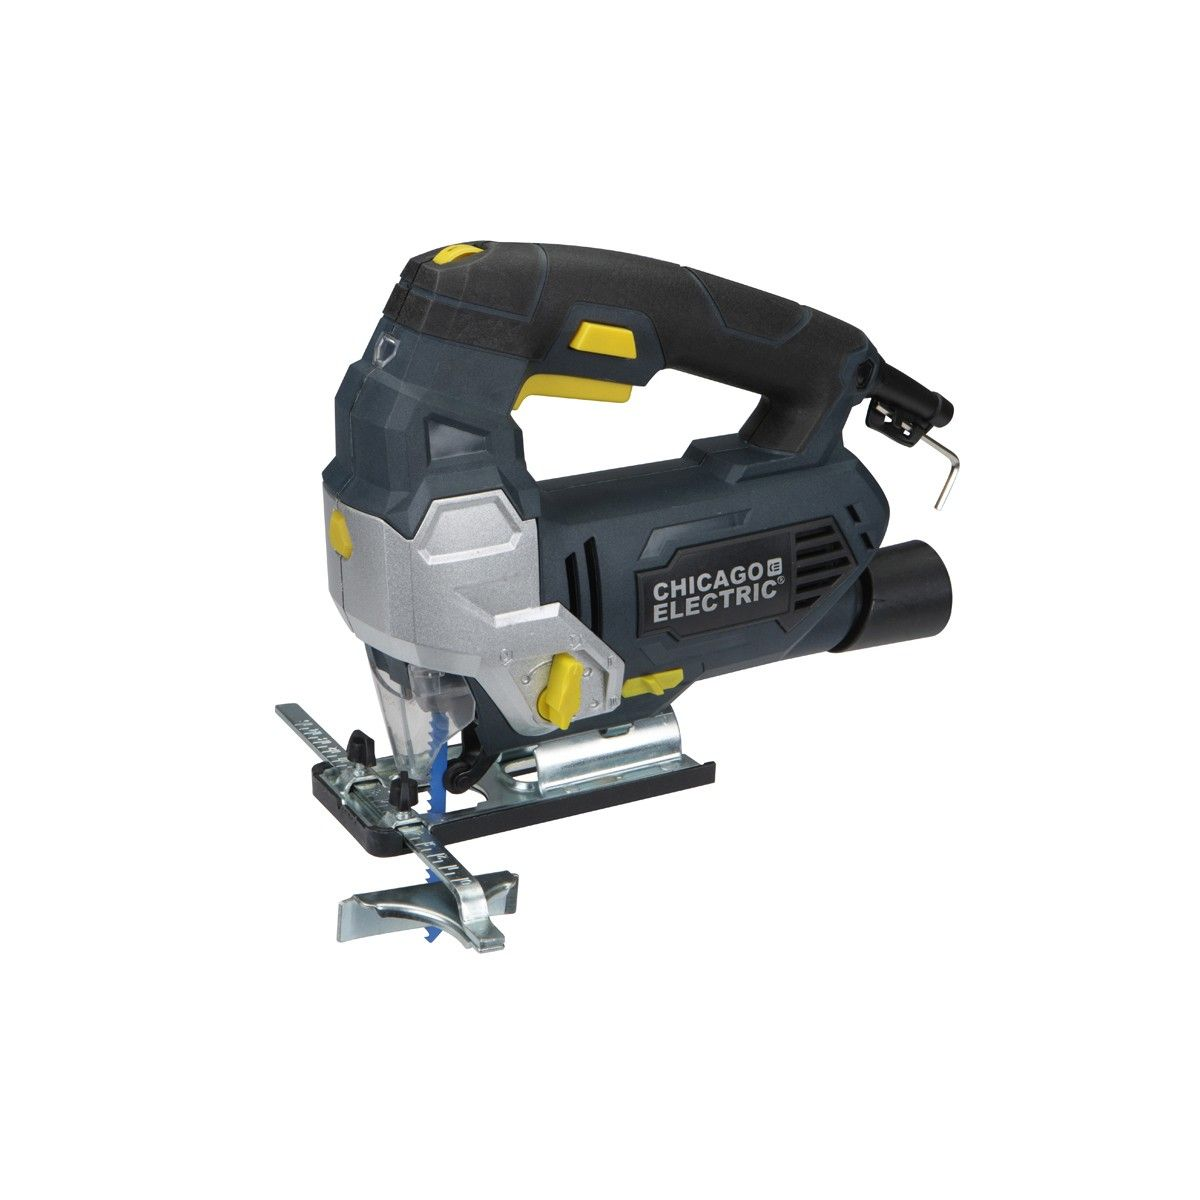 Chicago Electric Power Tools 69077 Orbital Jigsaw with Dust